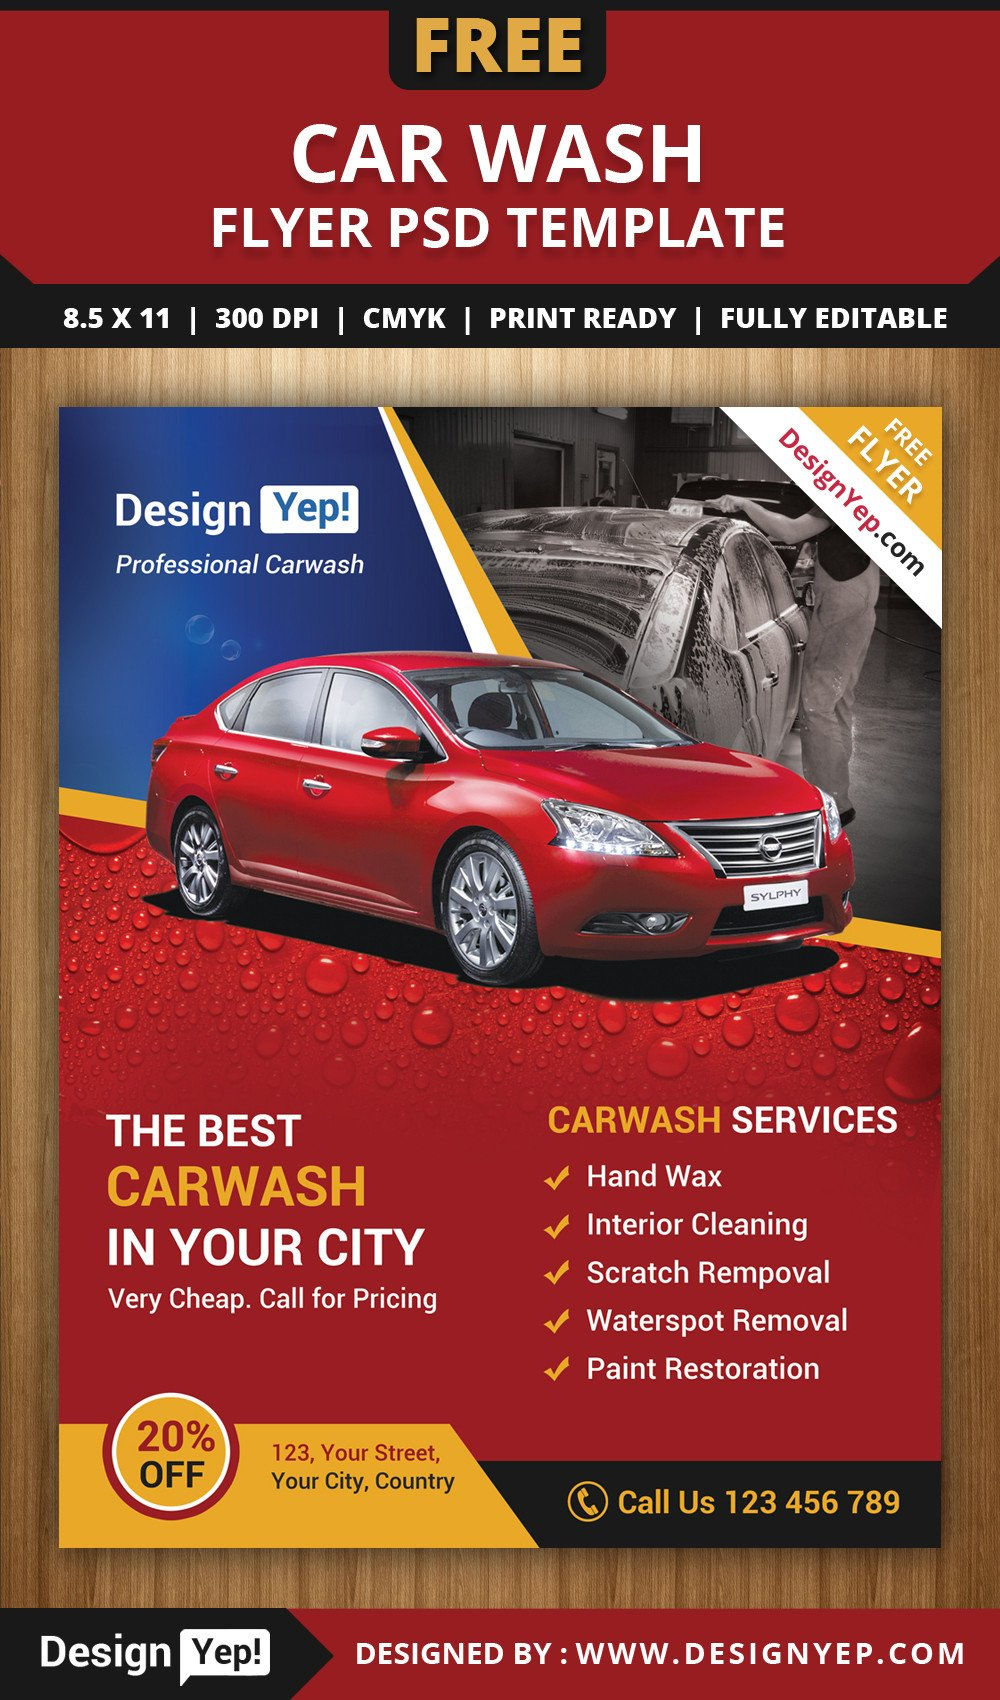 Car Wash Flyer Template Free Free Car Wash Flyer Psd Template Designyep